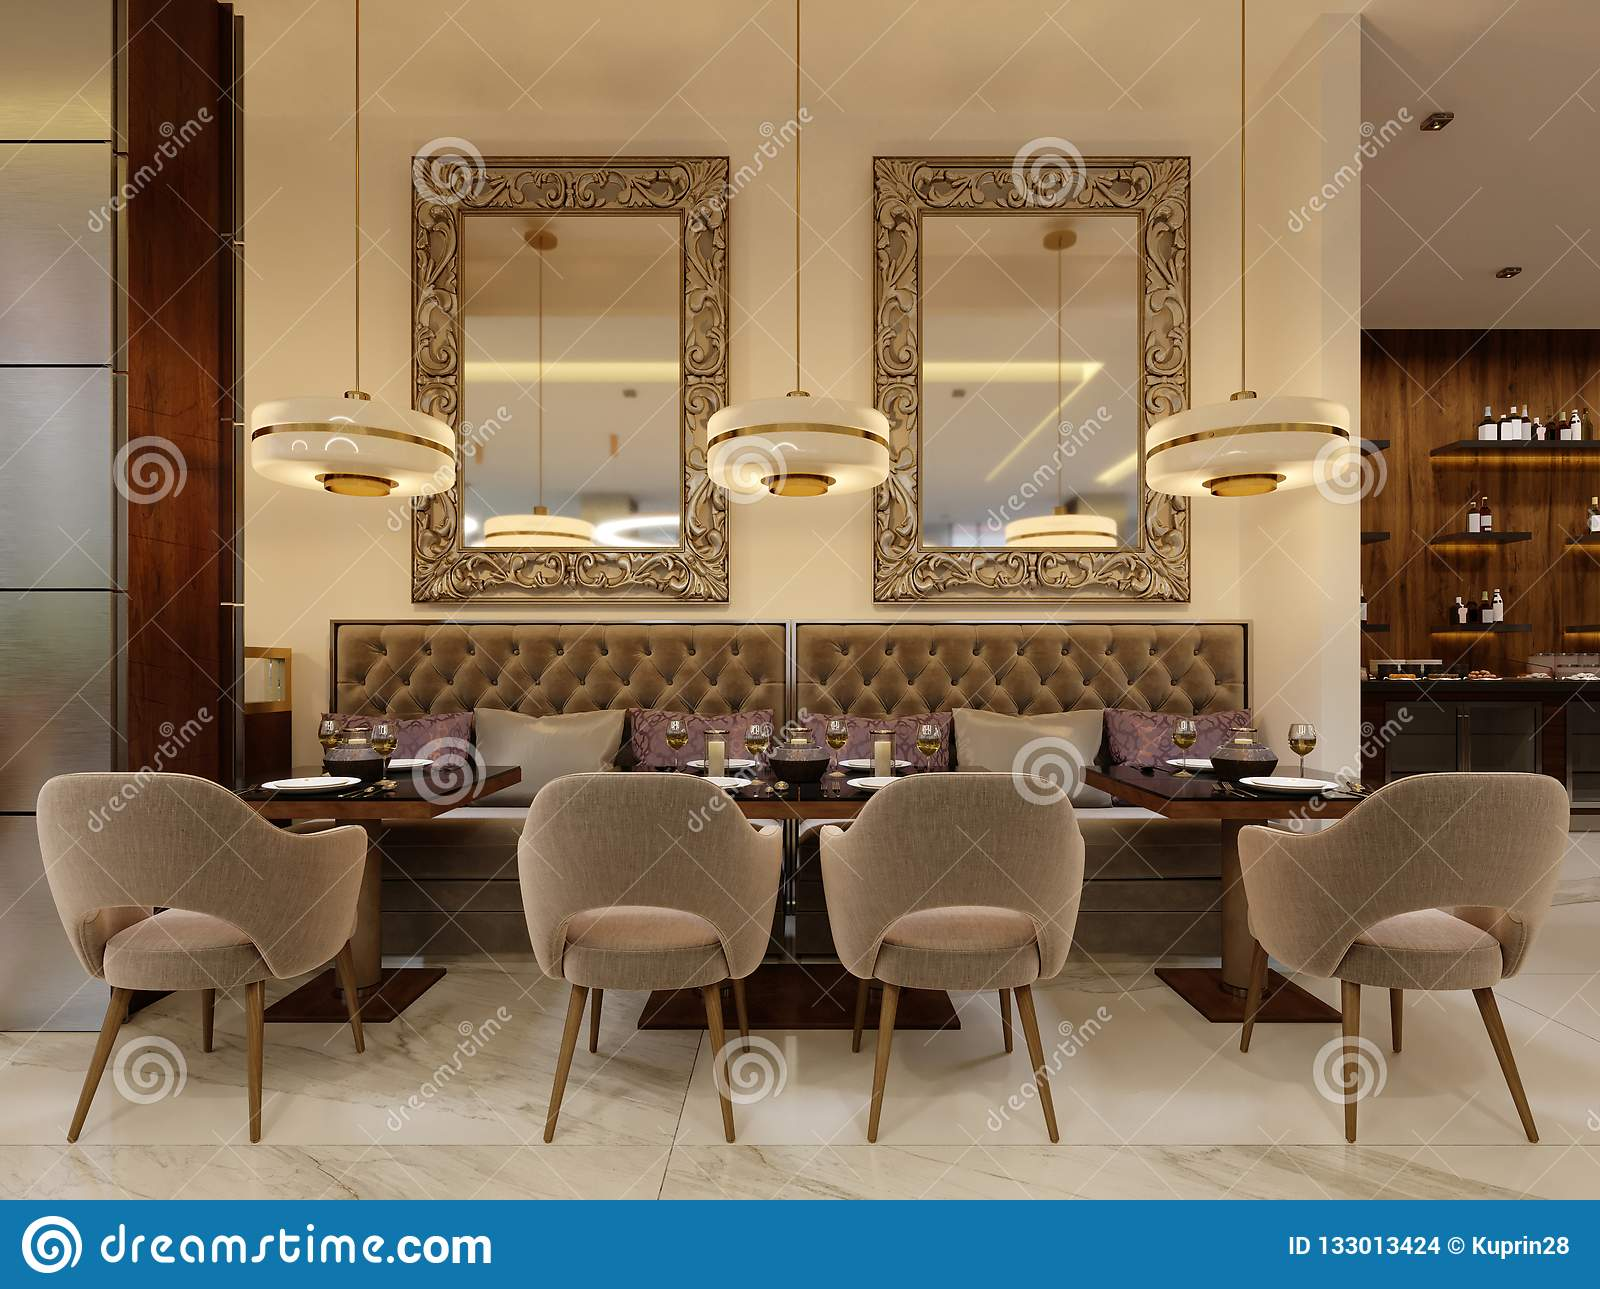 The Modern Conceptual Interior Design Of The Restaurant Is In